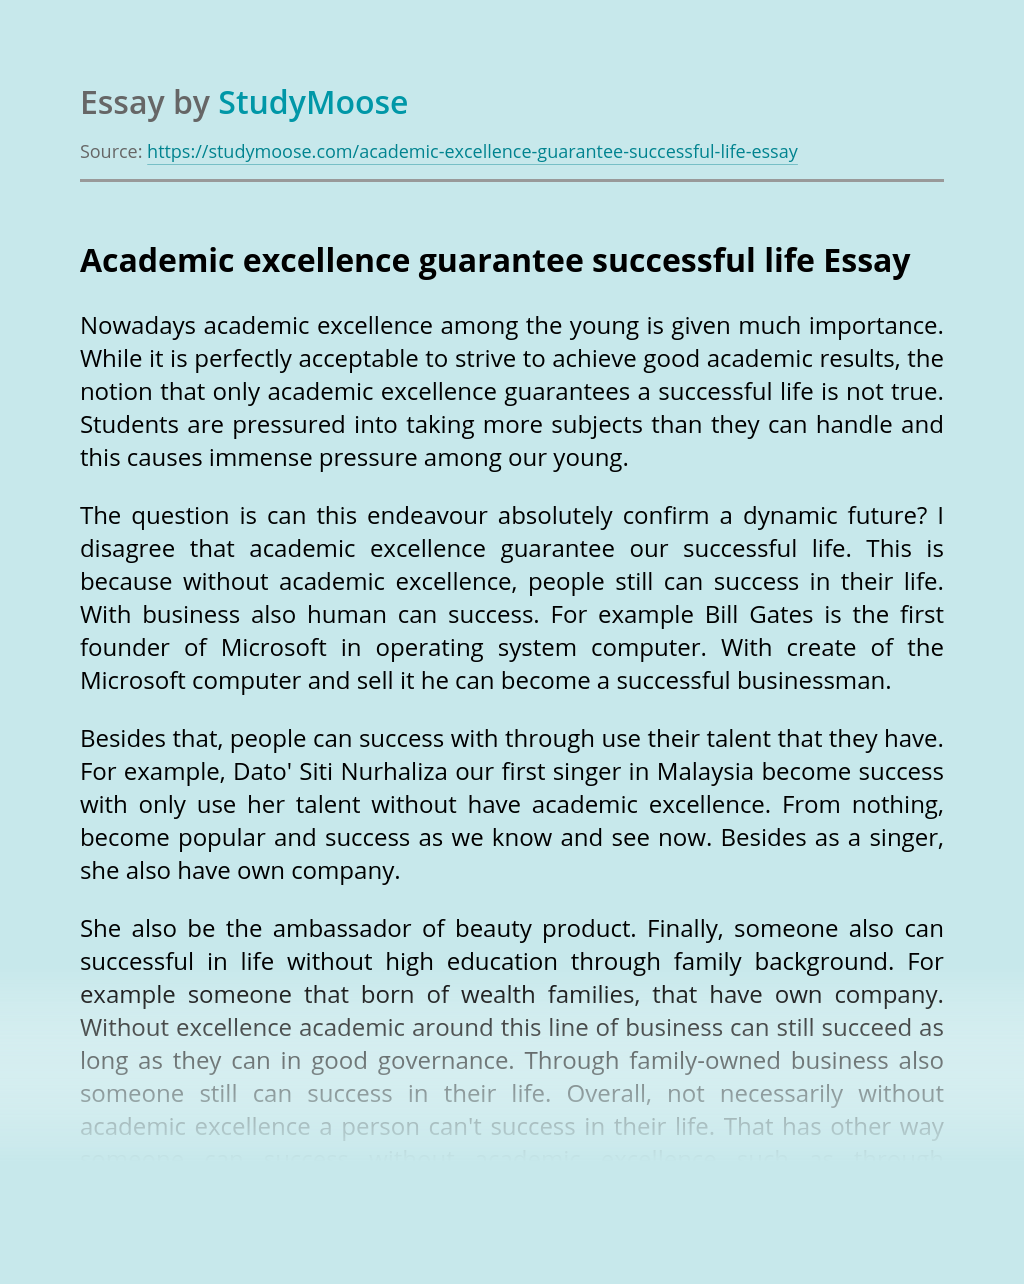 Academic excellence guarantee successful life